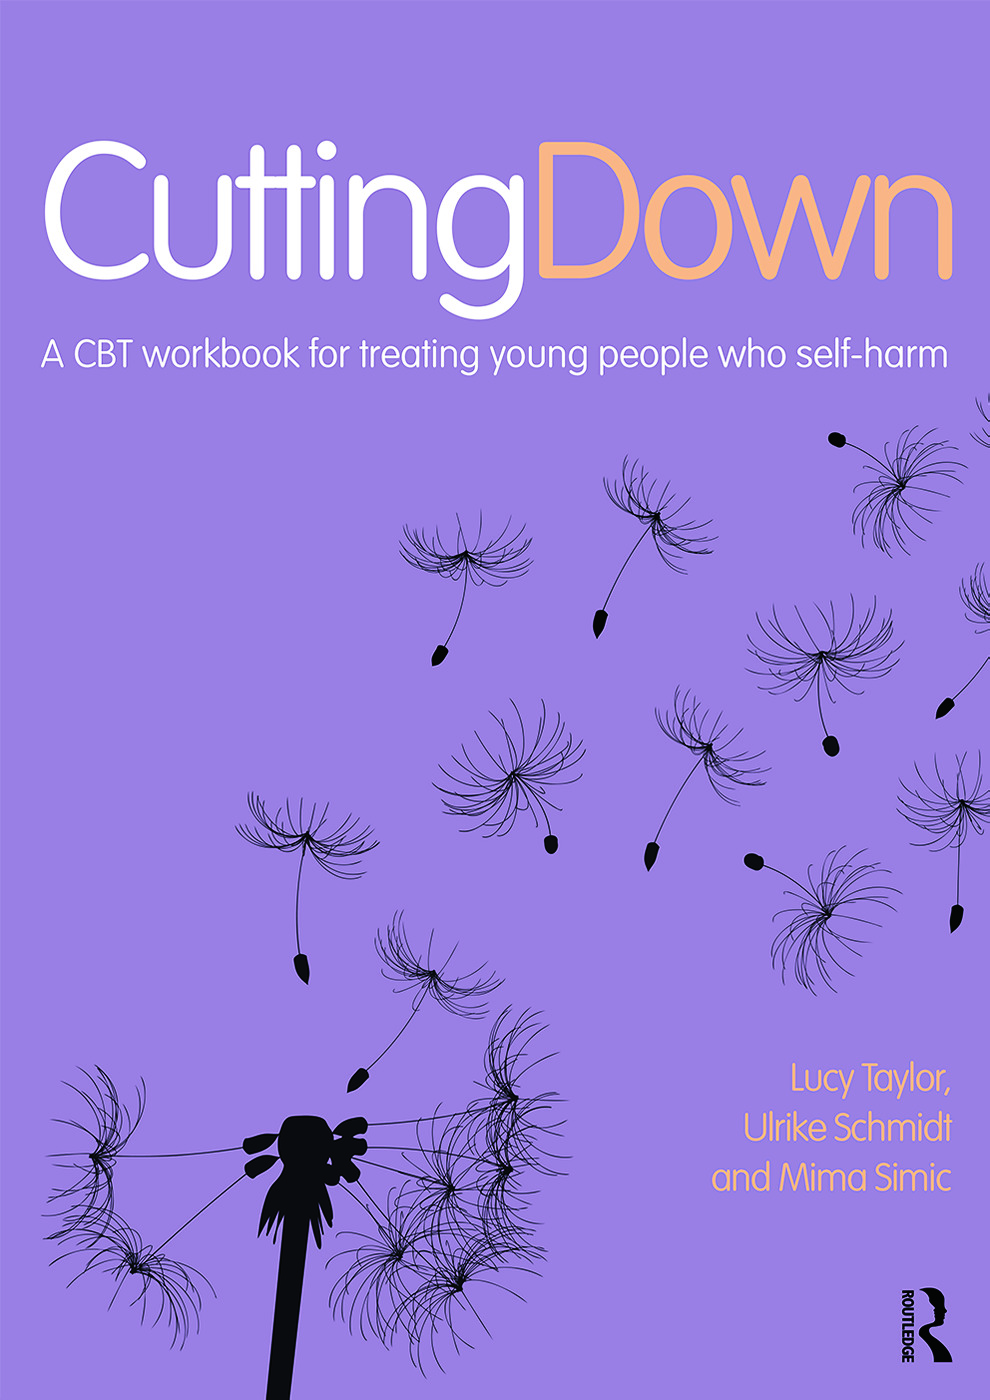 Cutting Down: A CBT workbook for treating young people who self-harm (Paperback) book cover